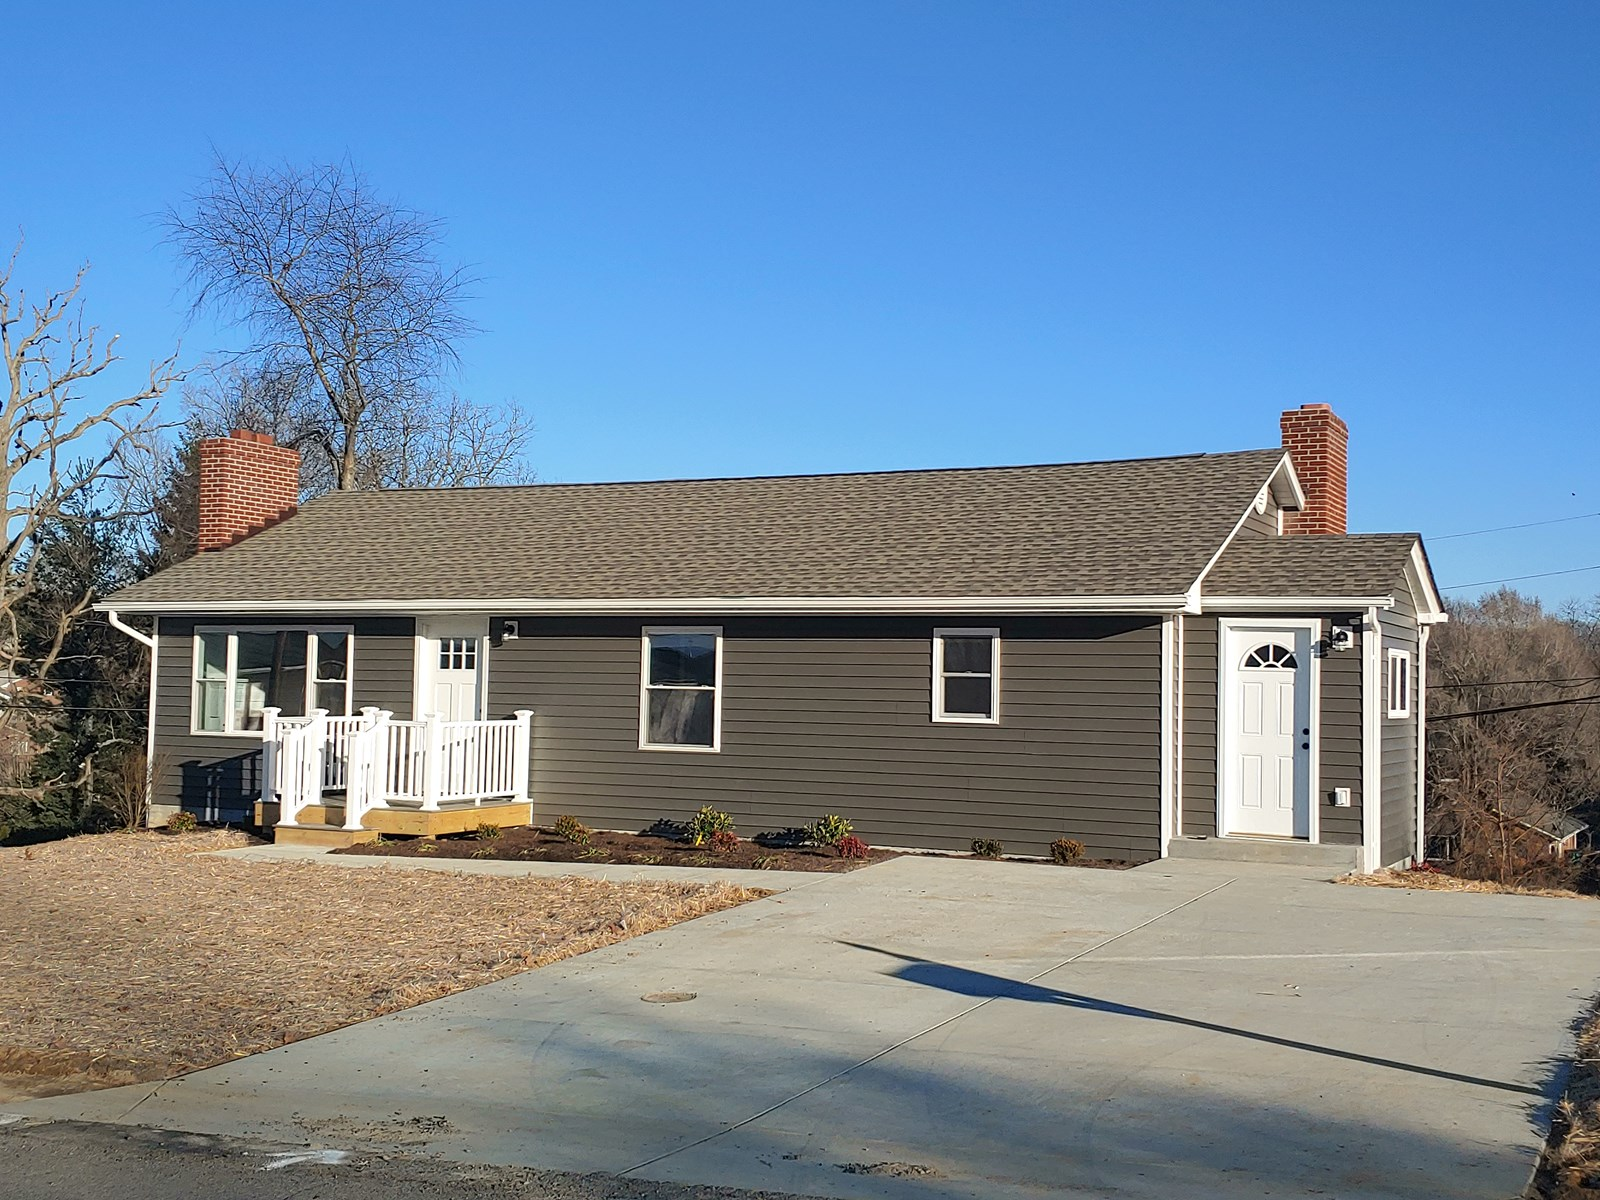 Newly Remodeled Home for Sale in Christiansburg VA!